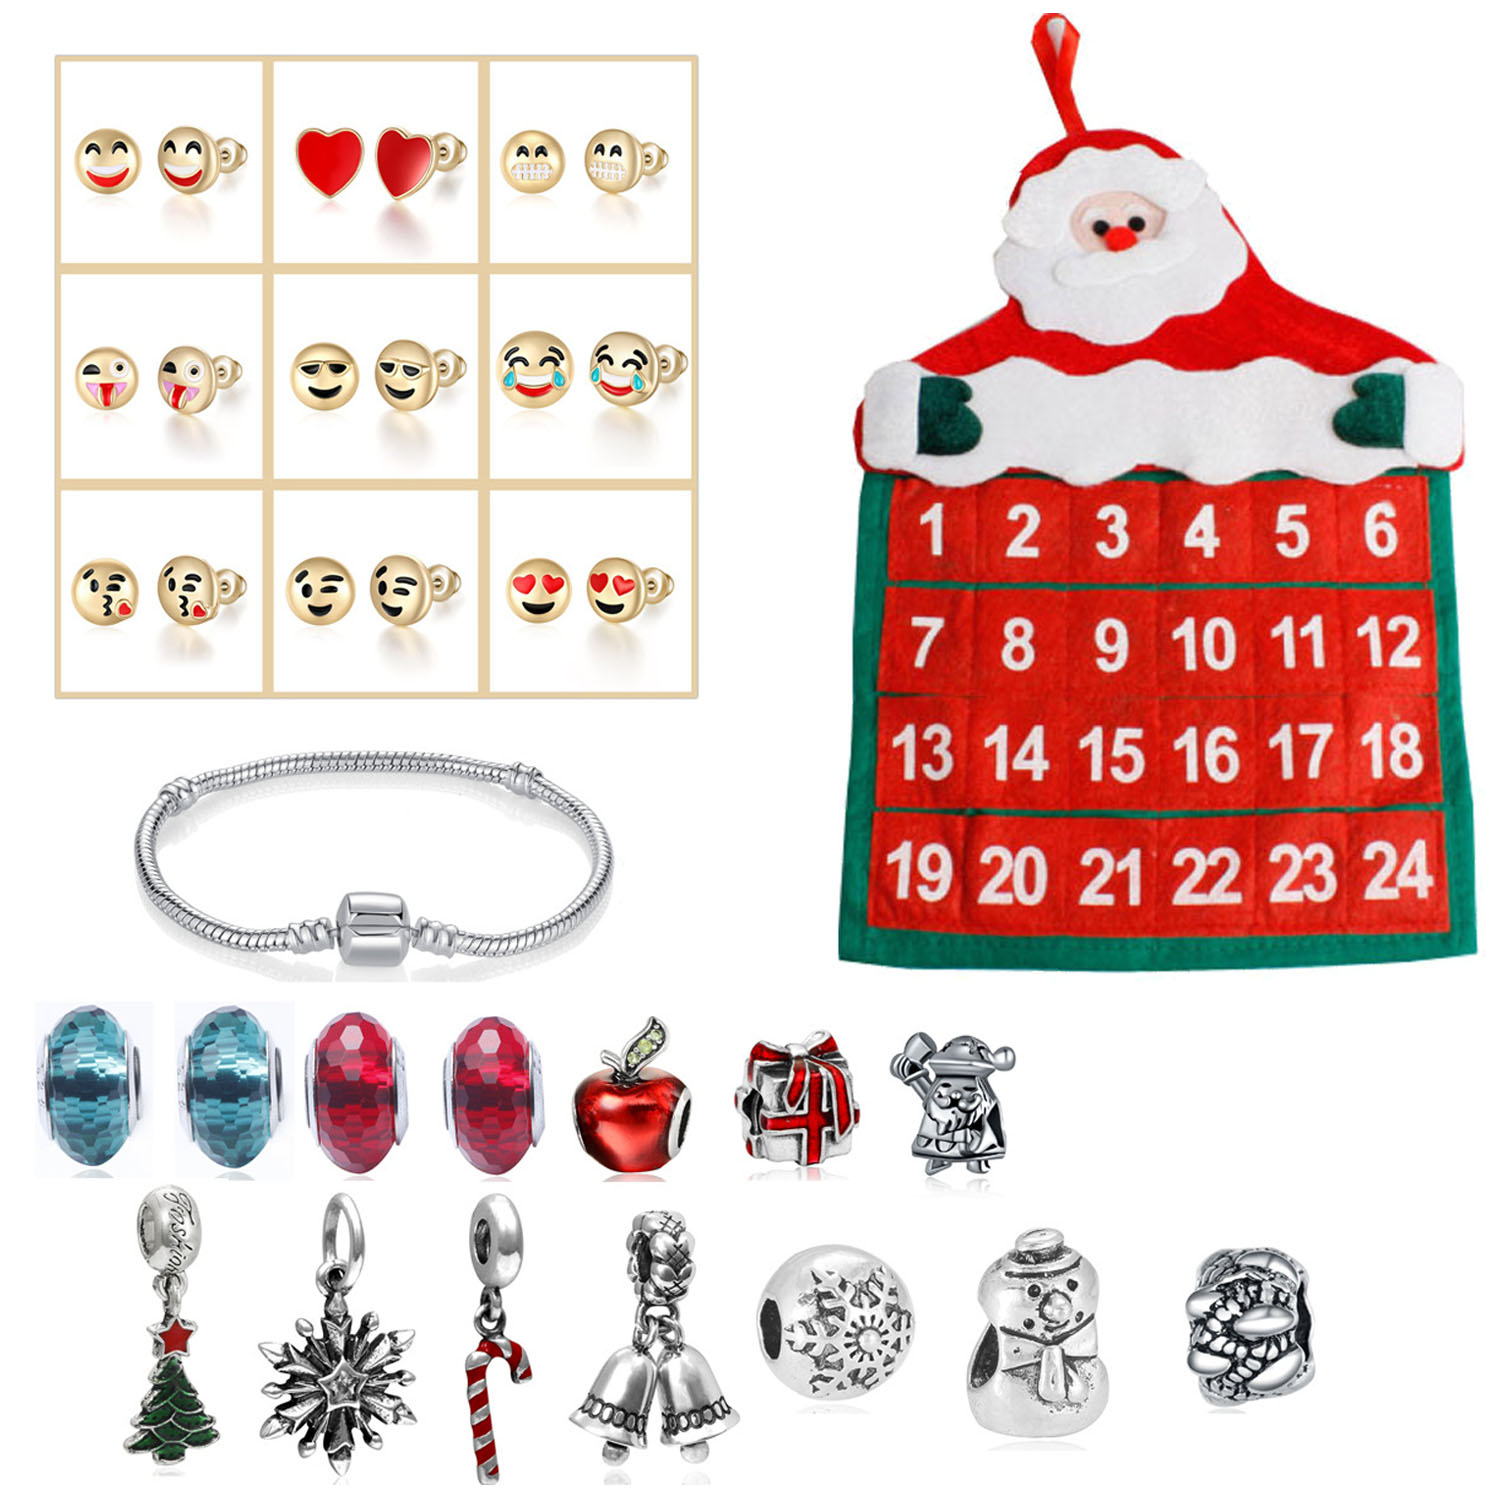 Cute Christmas Craft Pockets Santa Claus Advent Calendar DIY 24 Days Charms Bracelet Beads Ear Studs Set Kids Girl Xmas Gifts